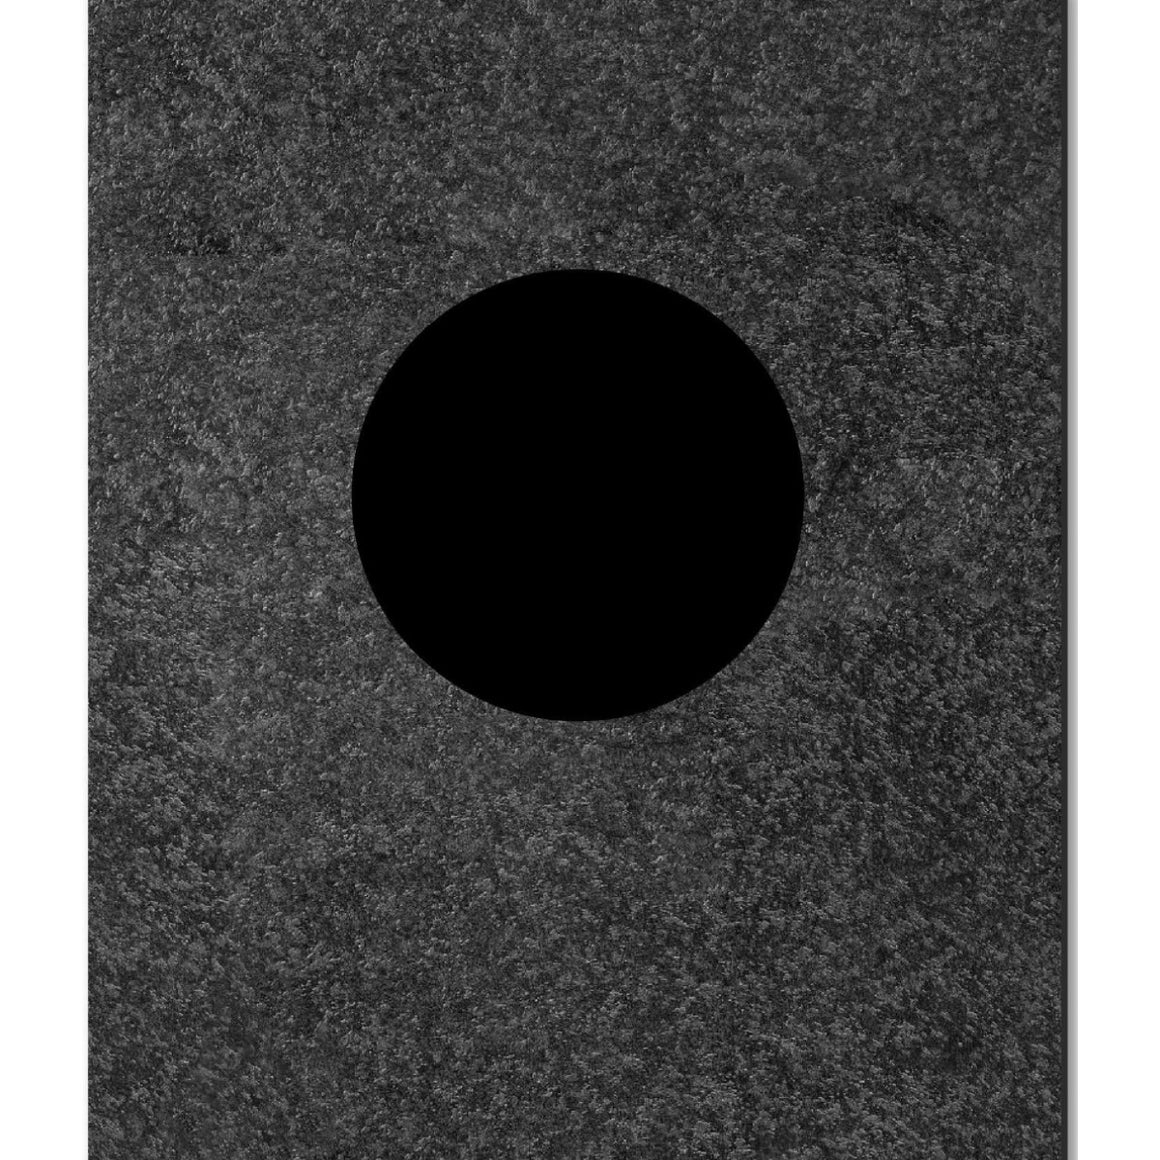 Image featuring a book cover with a black circle in the center with a grey pencil texture surrounding it